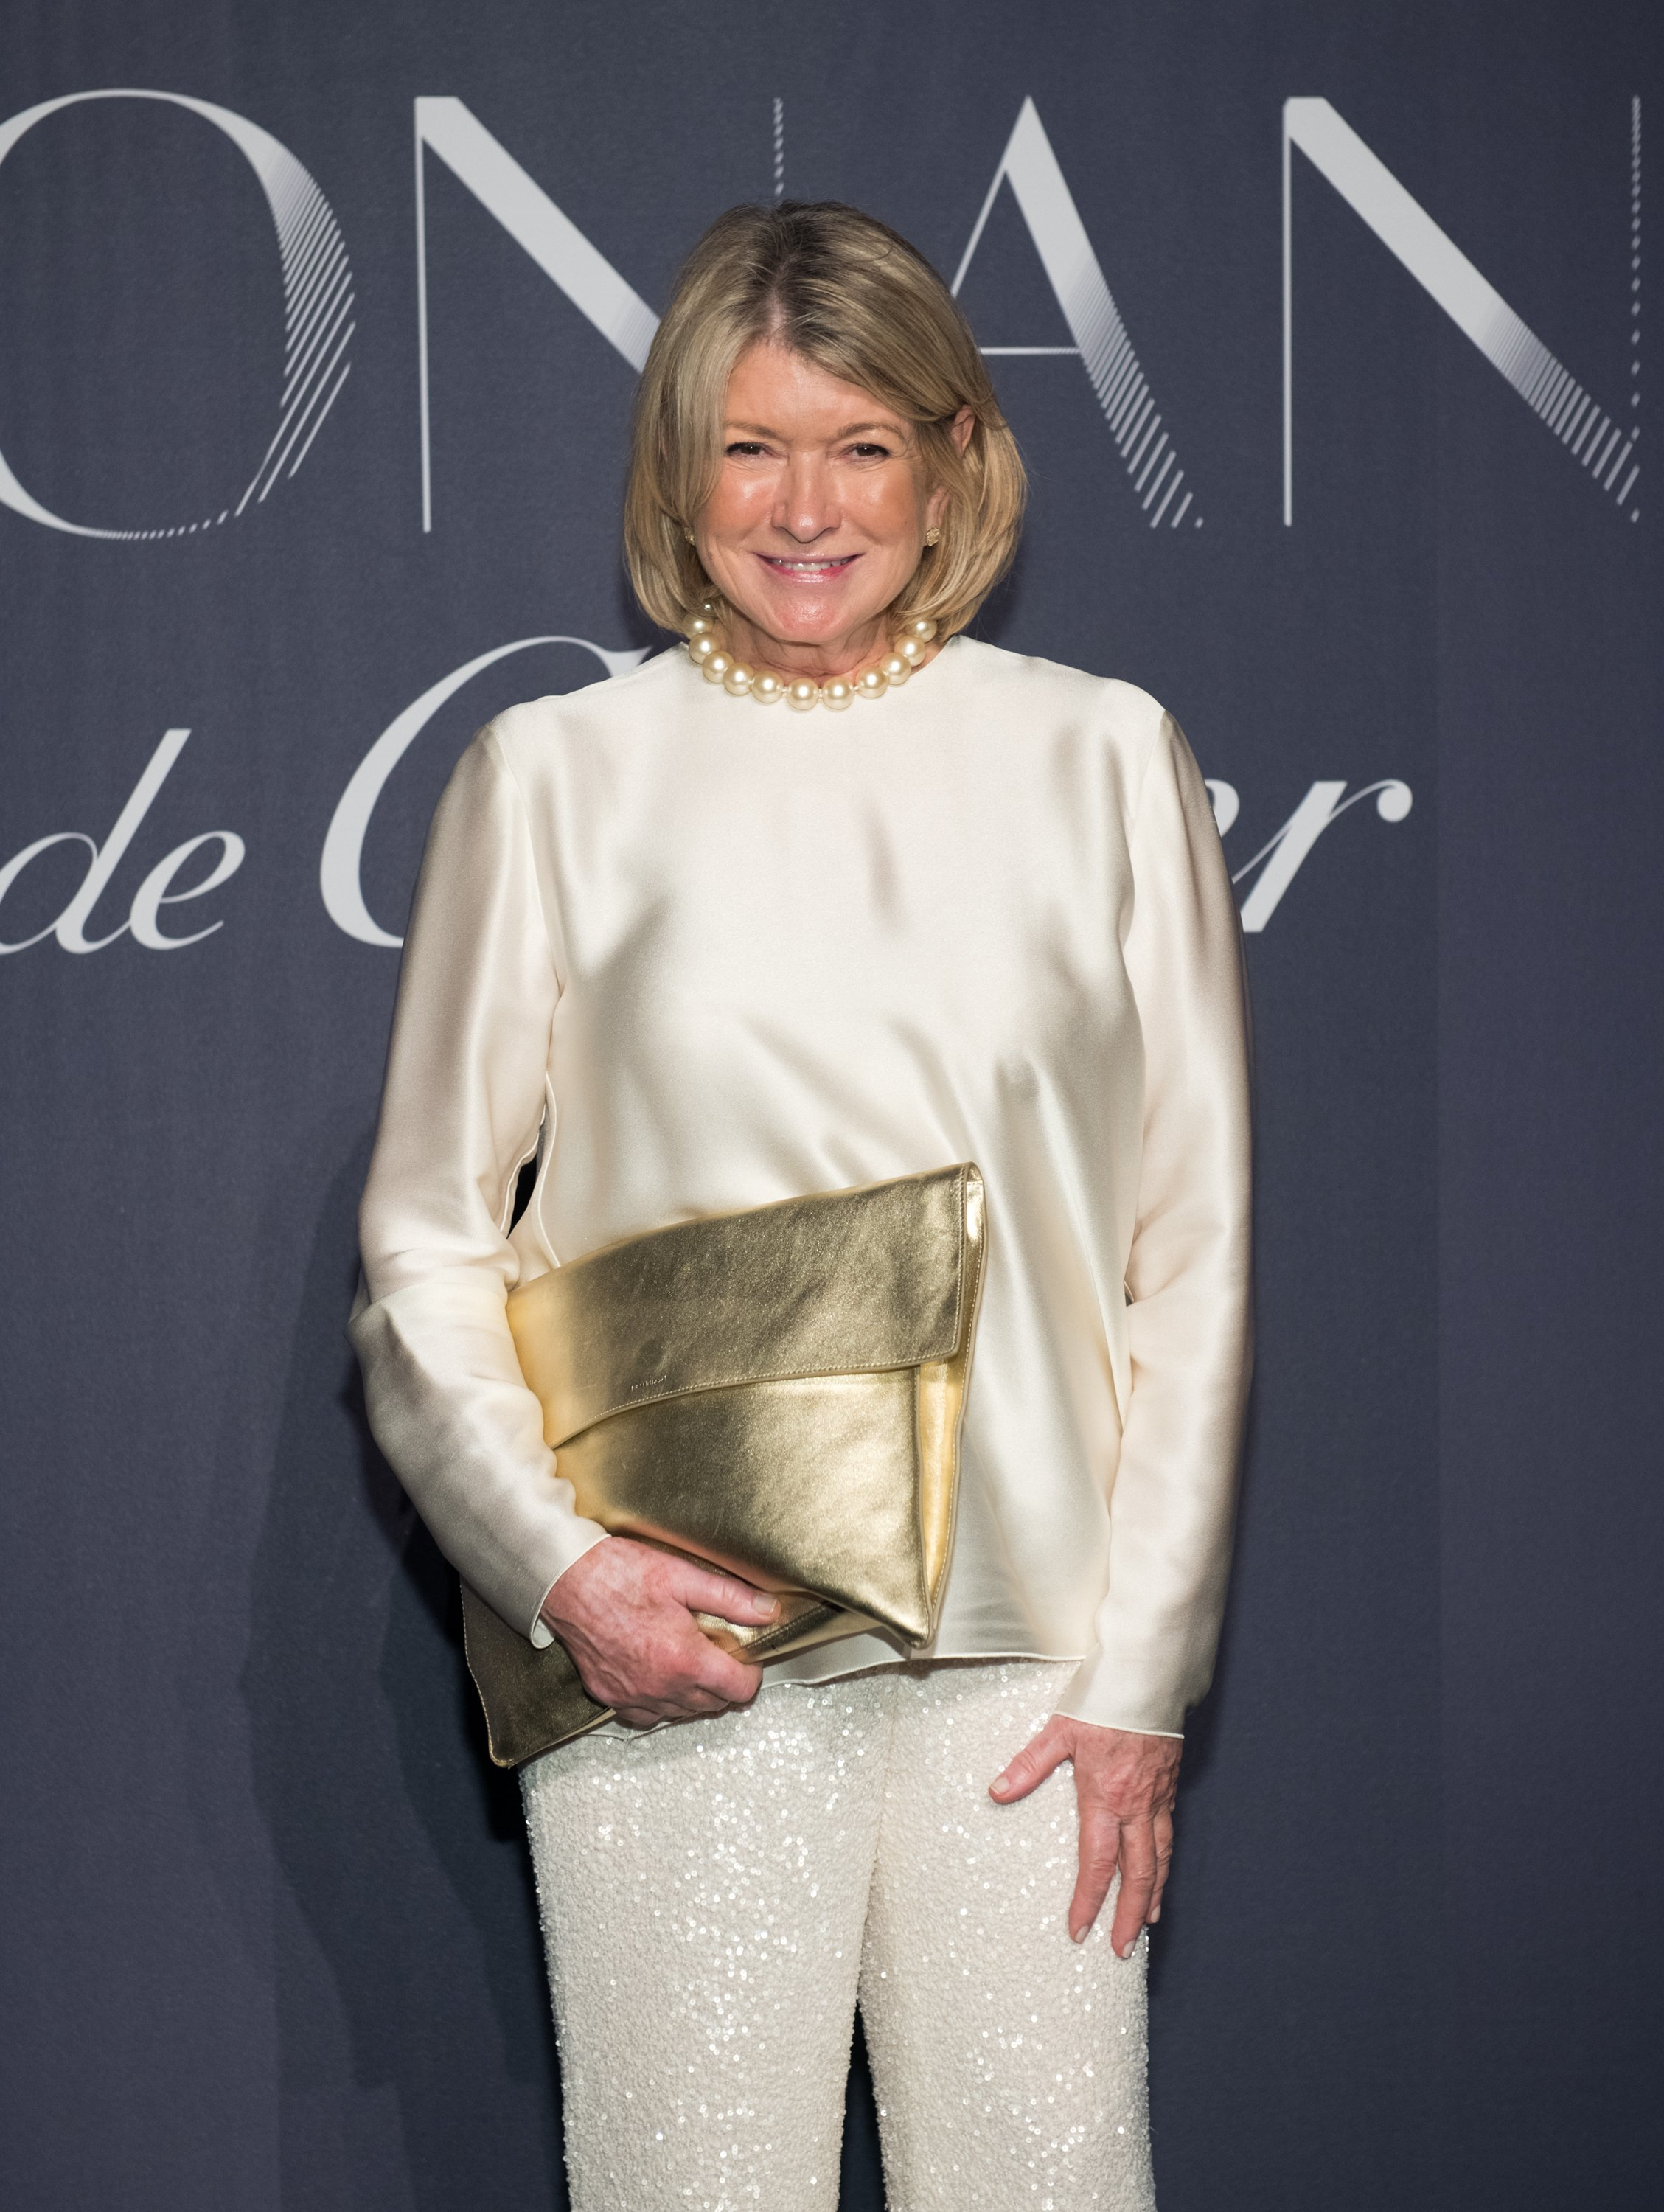 Martha Stewart attend a jewelry exhibit in New York City in 2017. | Photo: Getty Images